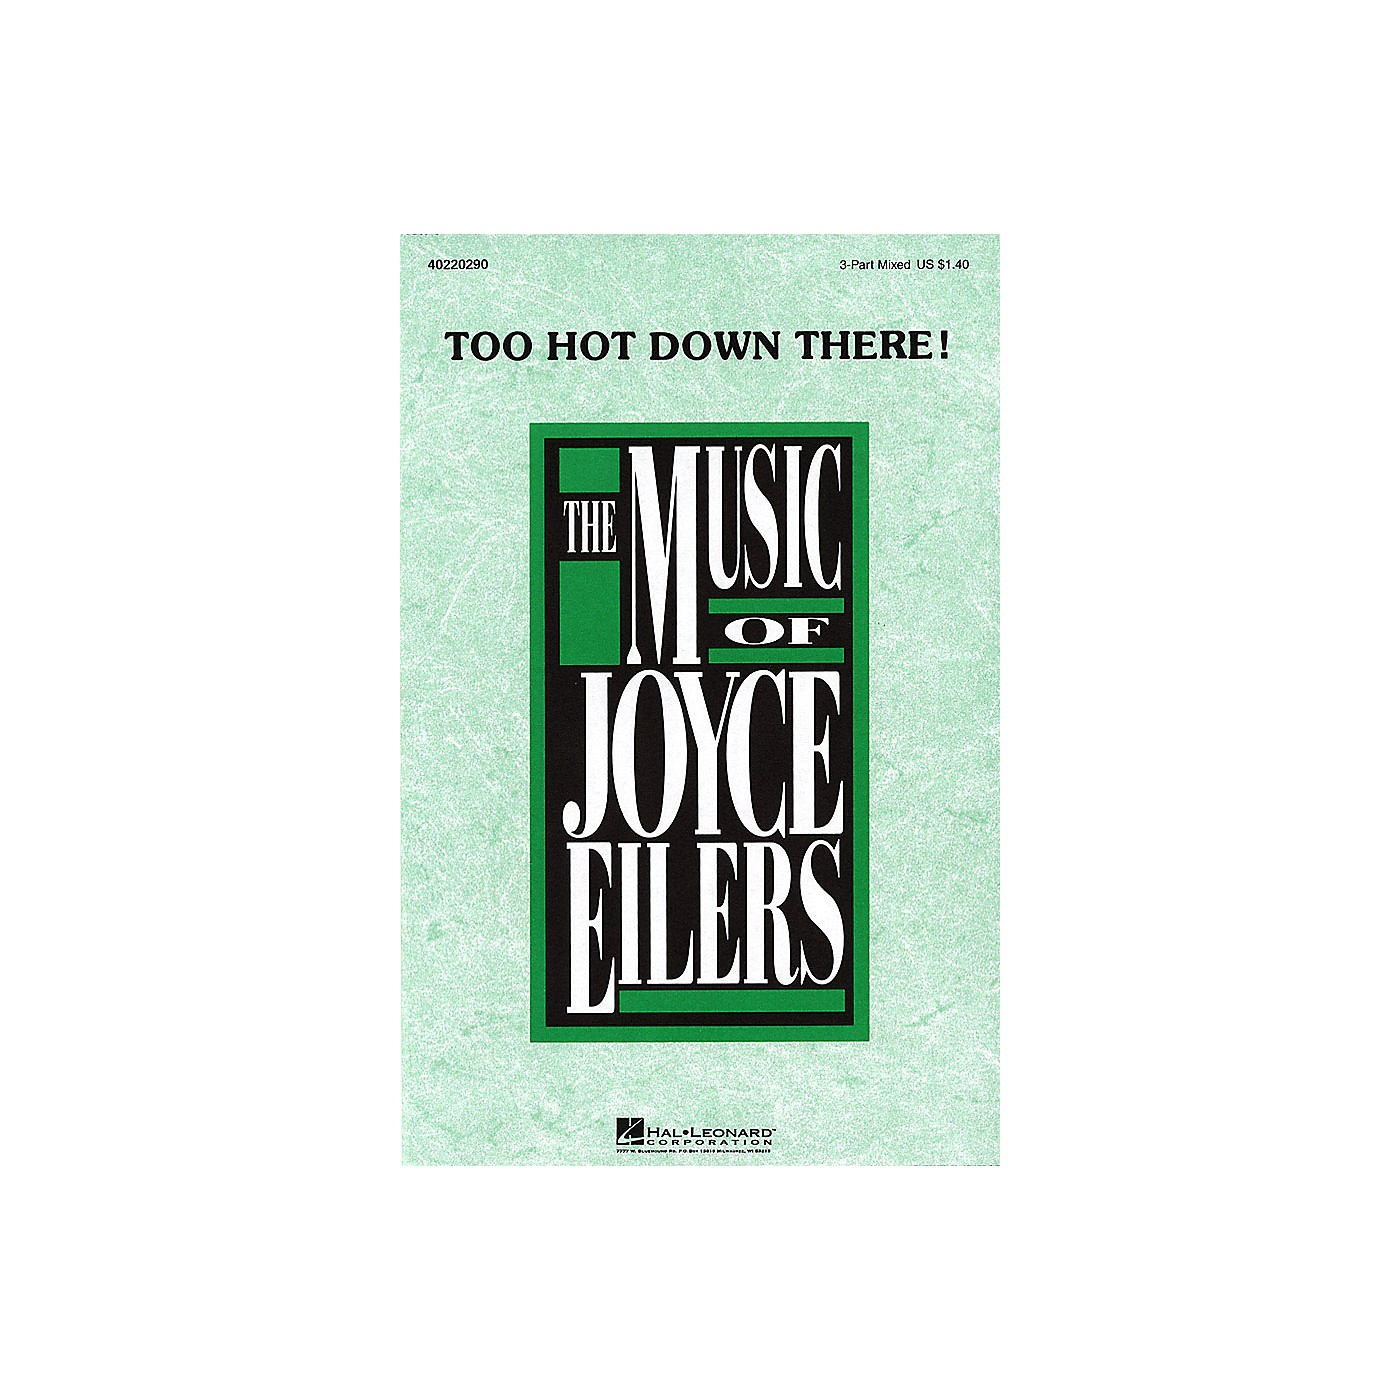 Hal Leonard Too Hot Down There! 3-Part Mixed composed by Joyce Eilers thumbnail